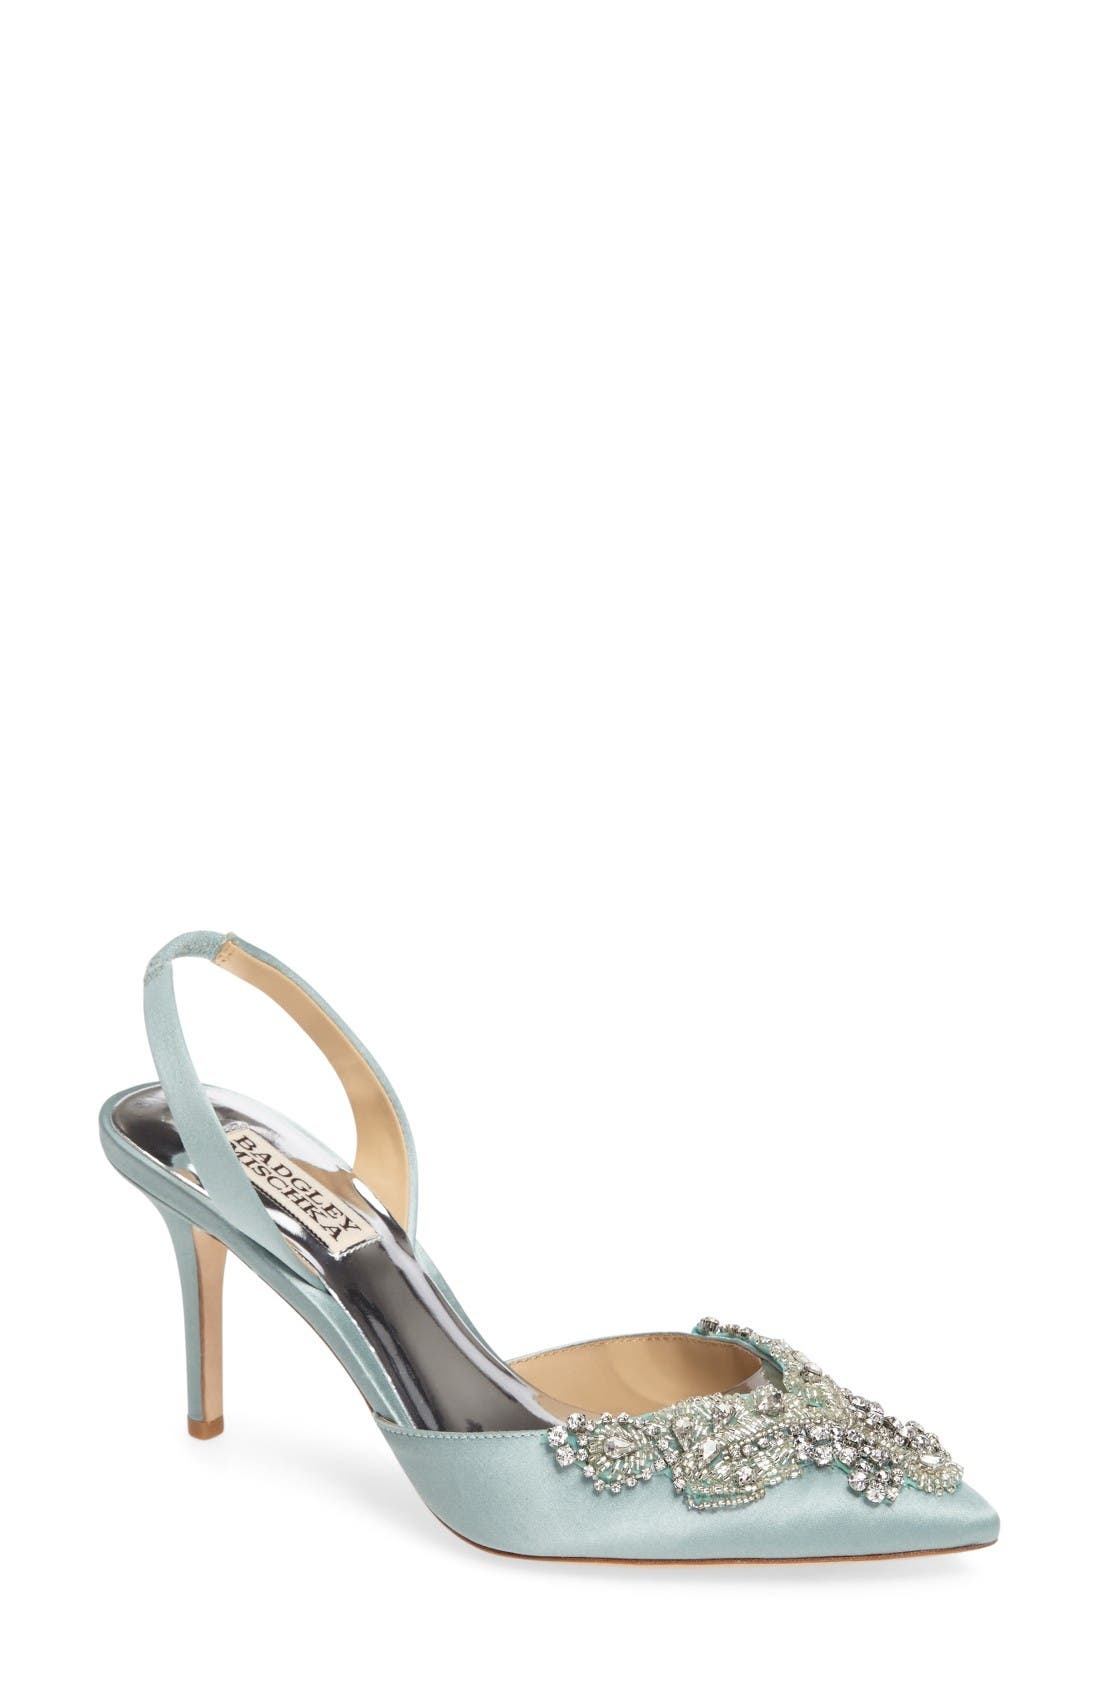 Main Image - Badgley Mischka Barnes Crystal Embellished Slingback Pump (Women)